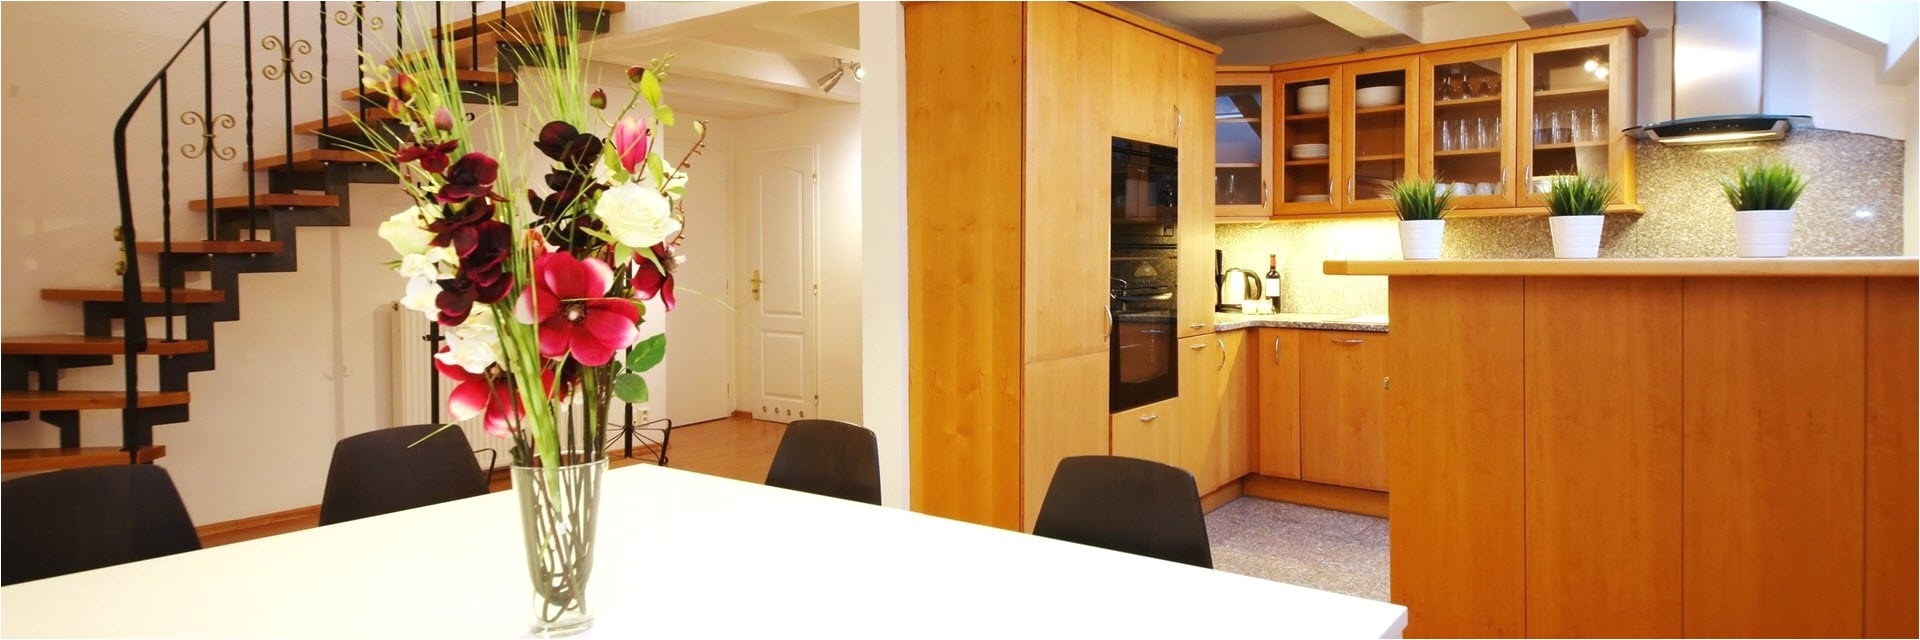 apartments for rent lovely prague apartments for rent in the heart of the city rentego of